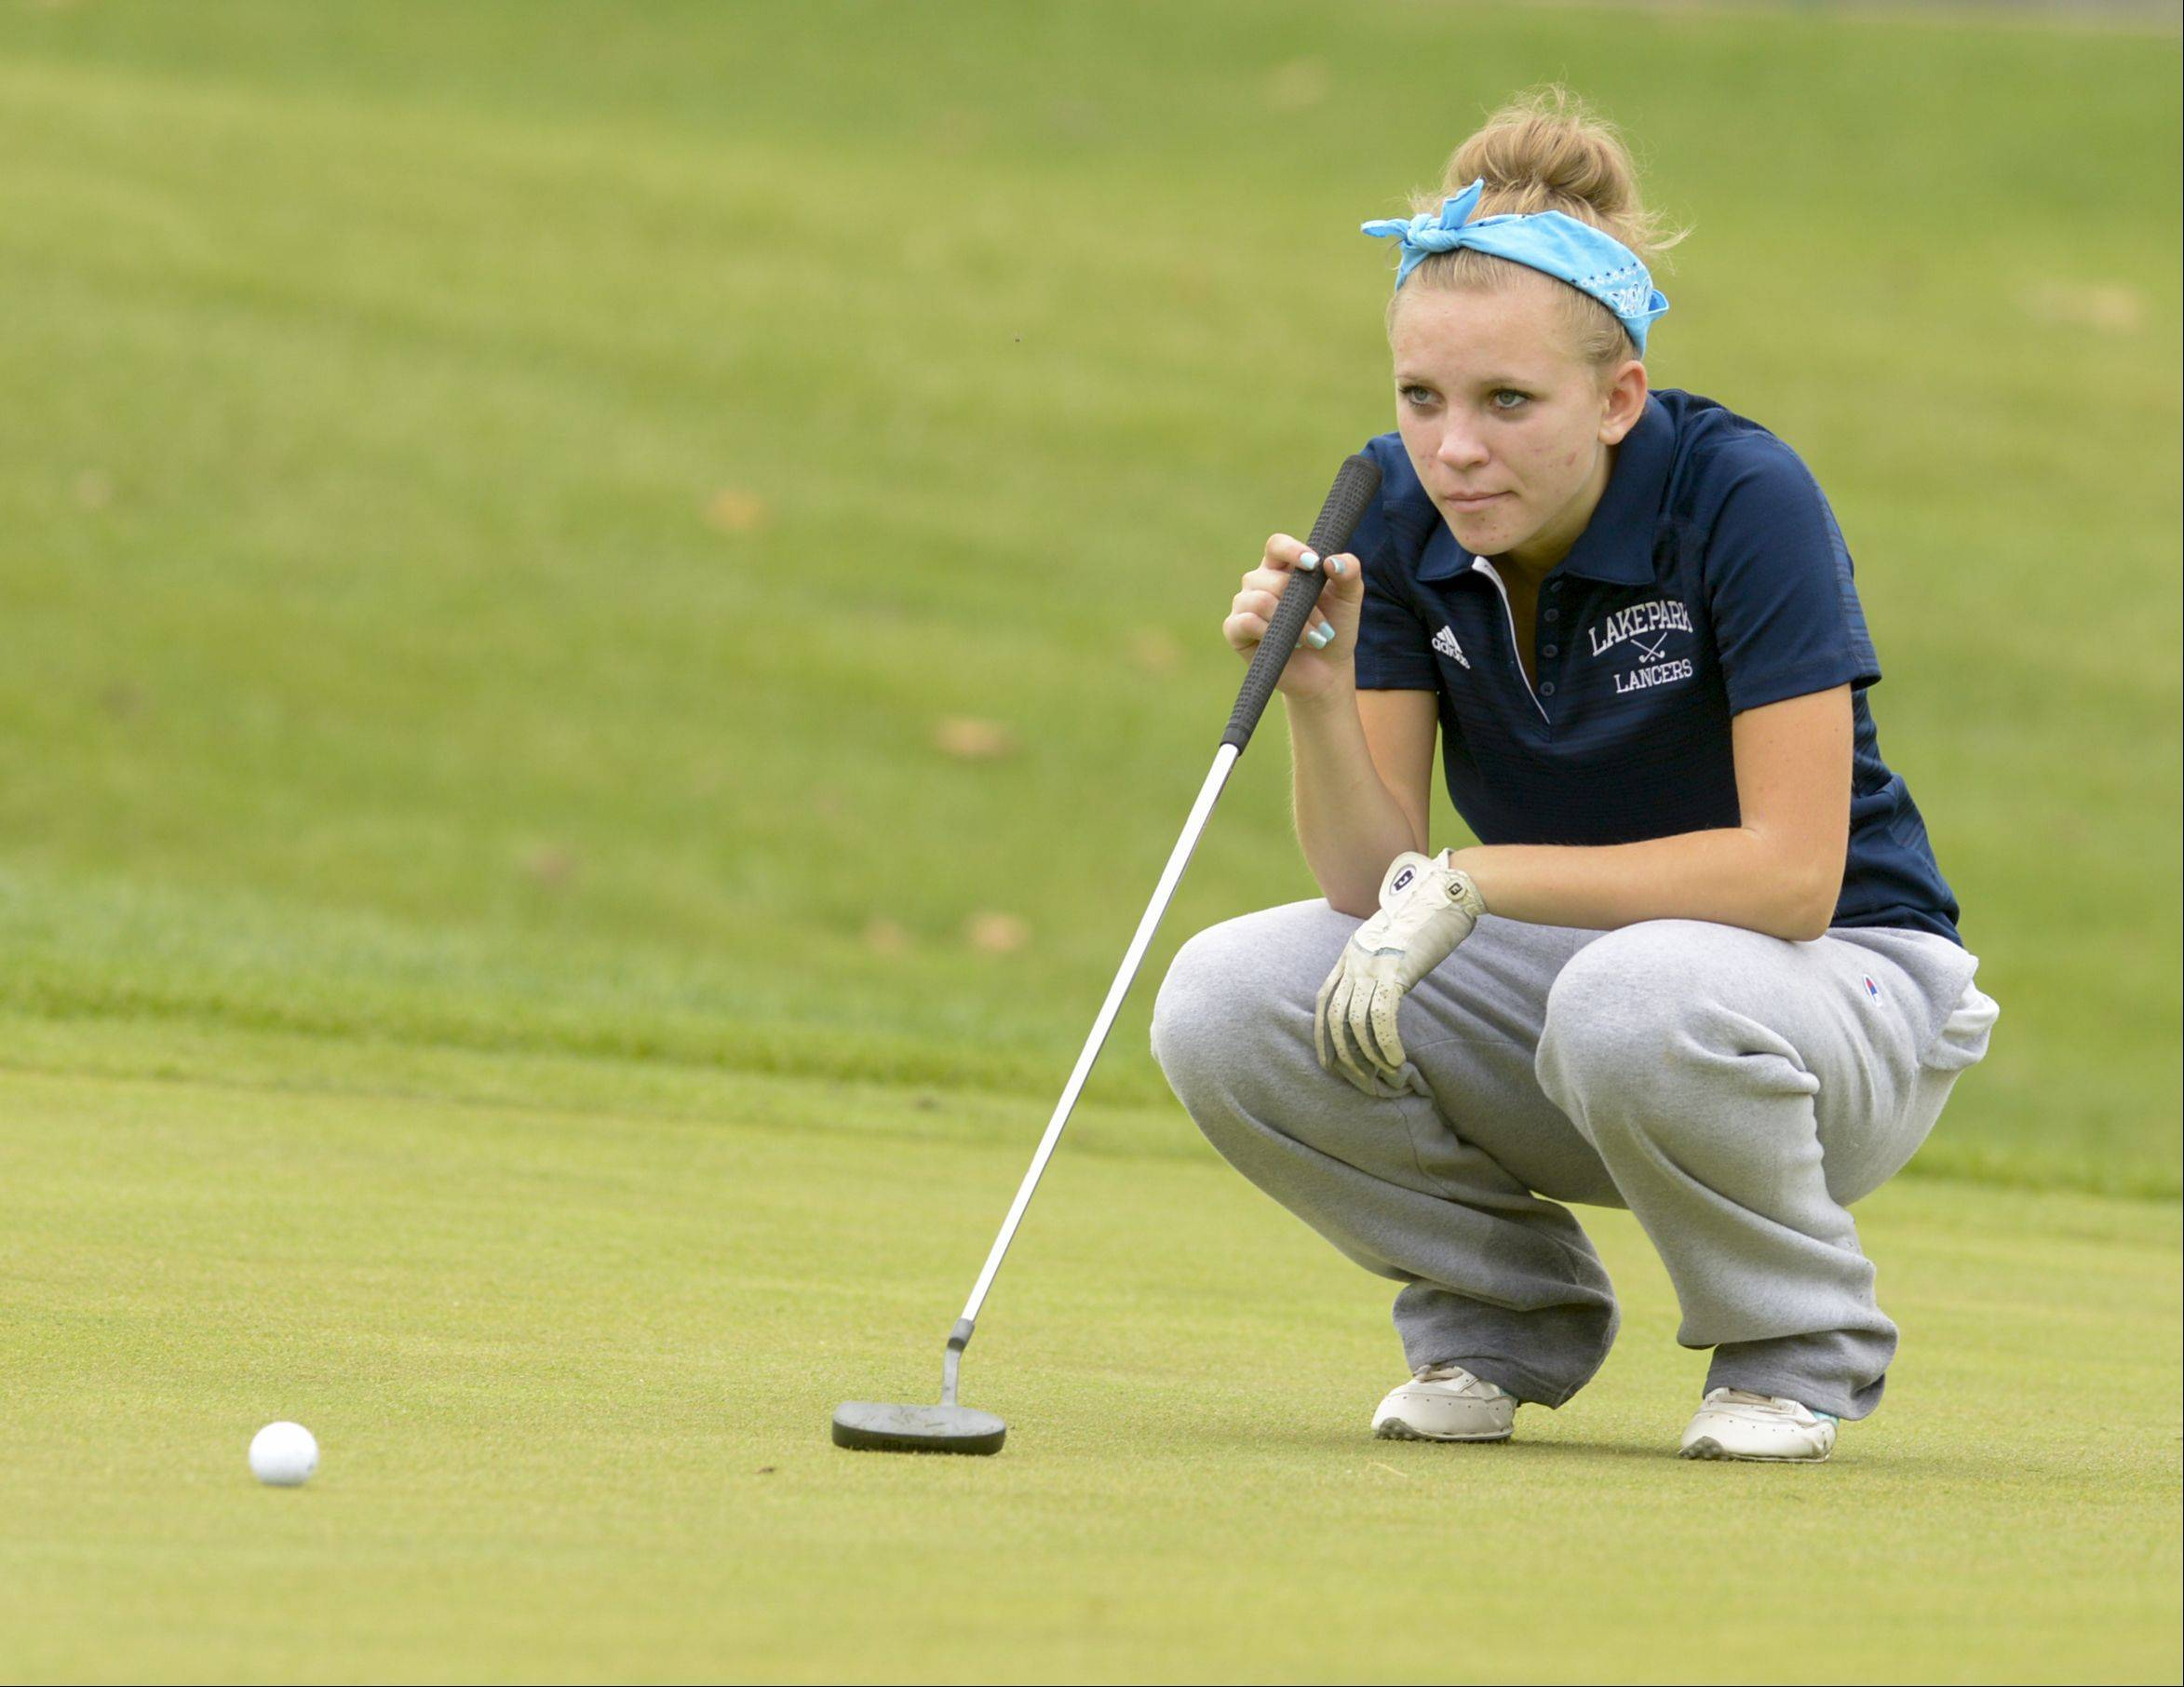 Madison McCallister of Lake Park checks the green before make her putt during the DuPage Valley Conference girls golf at Phillips Park Golf course in Aurora, Tuesday.